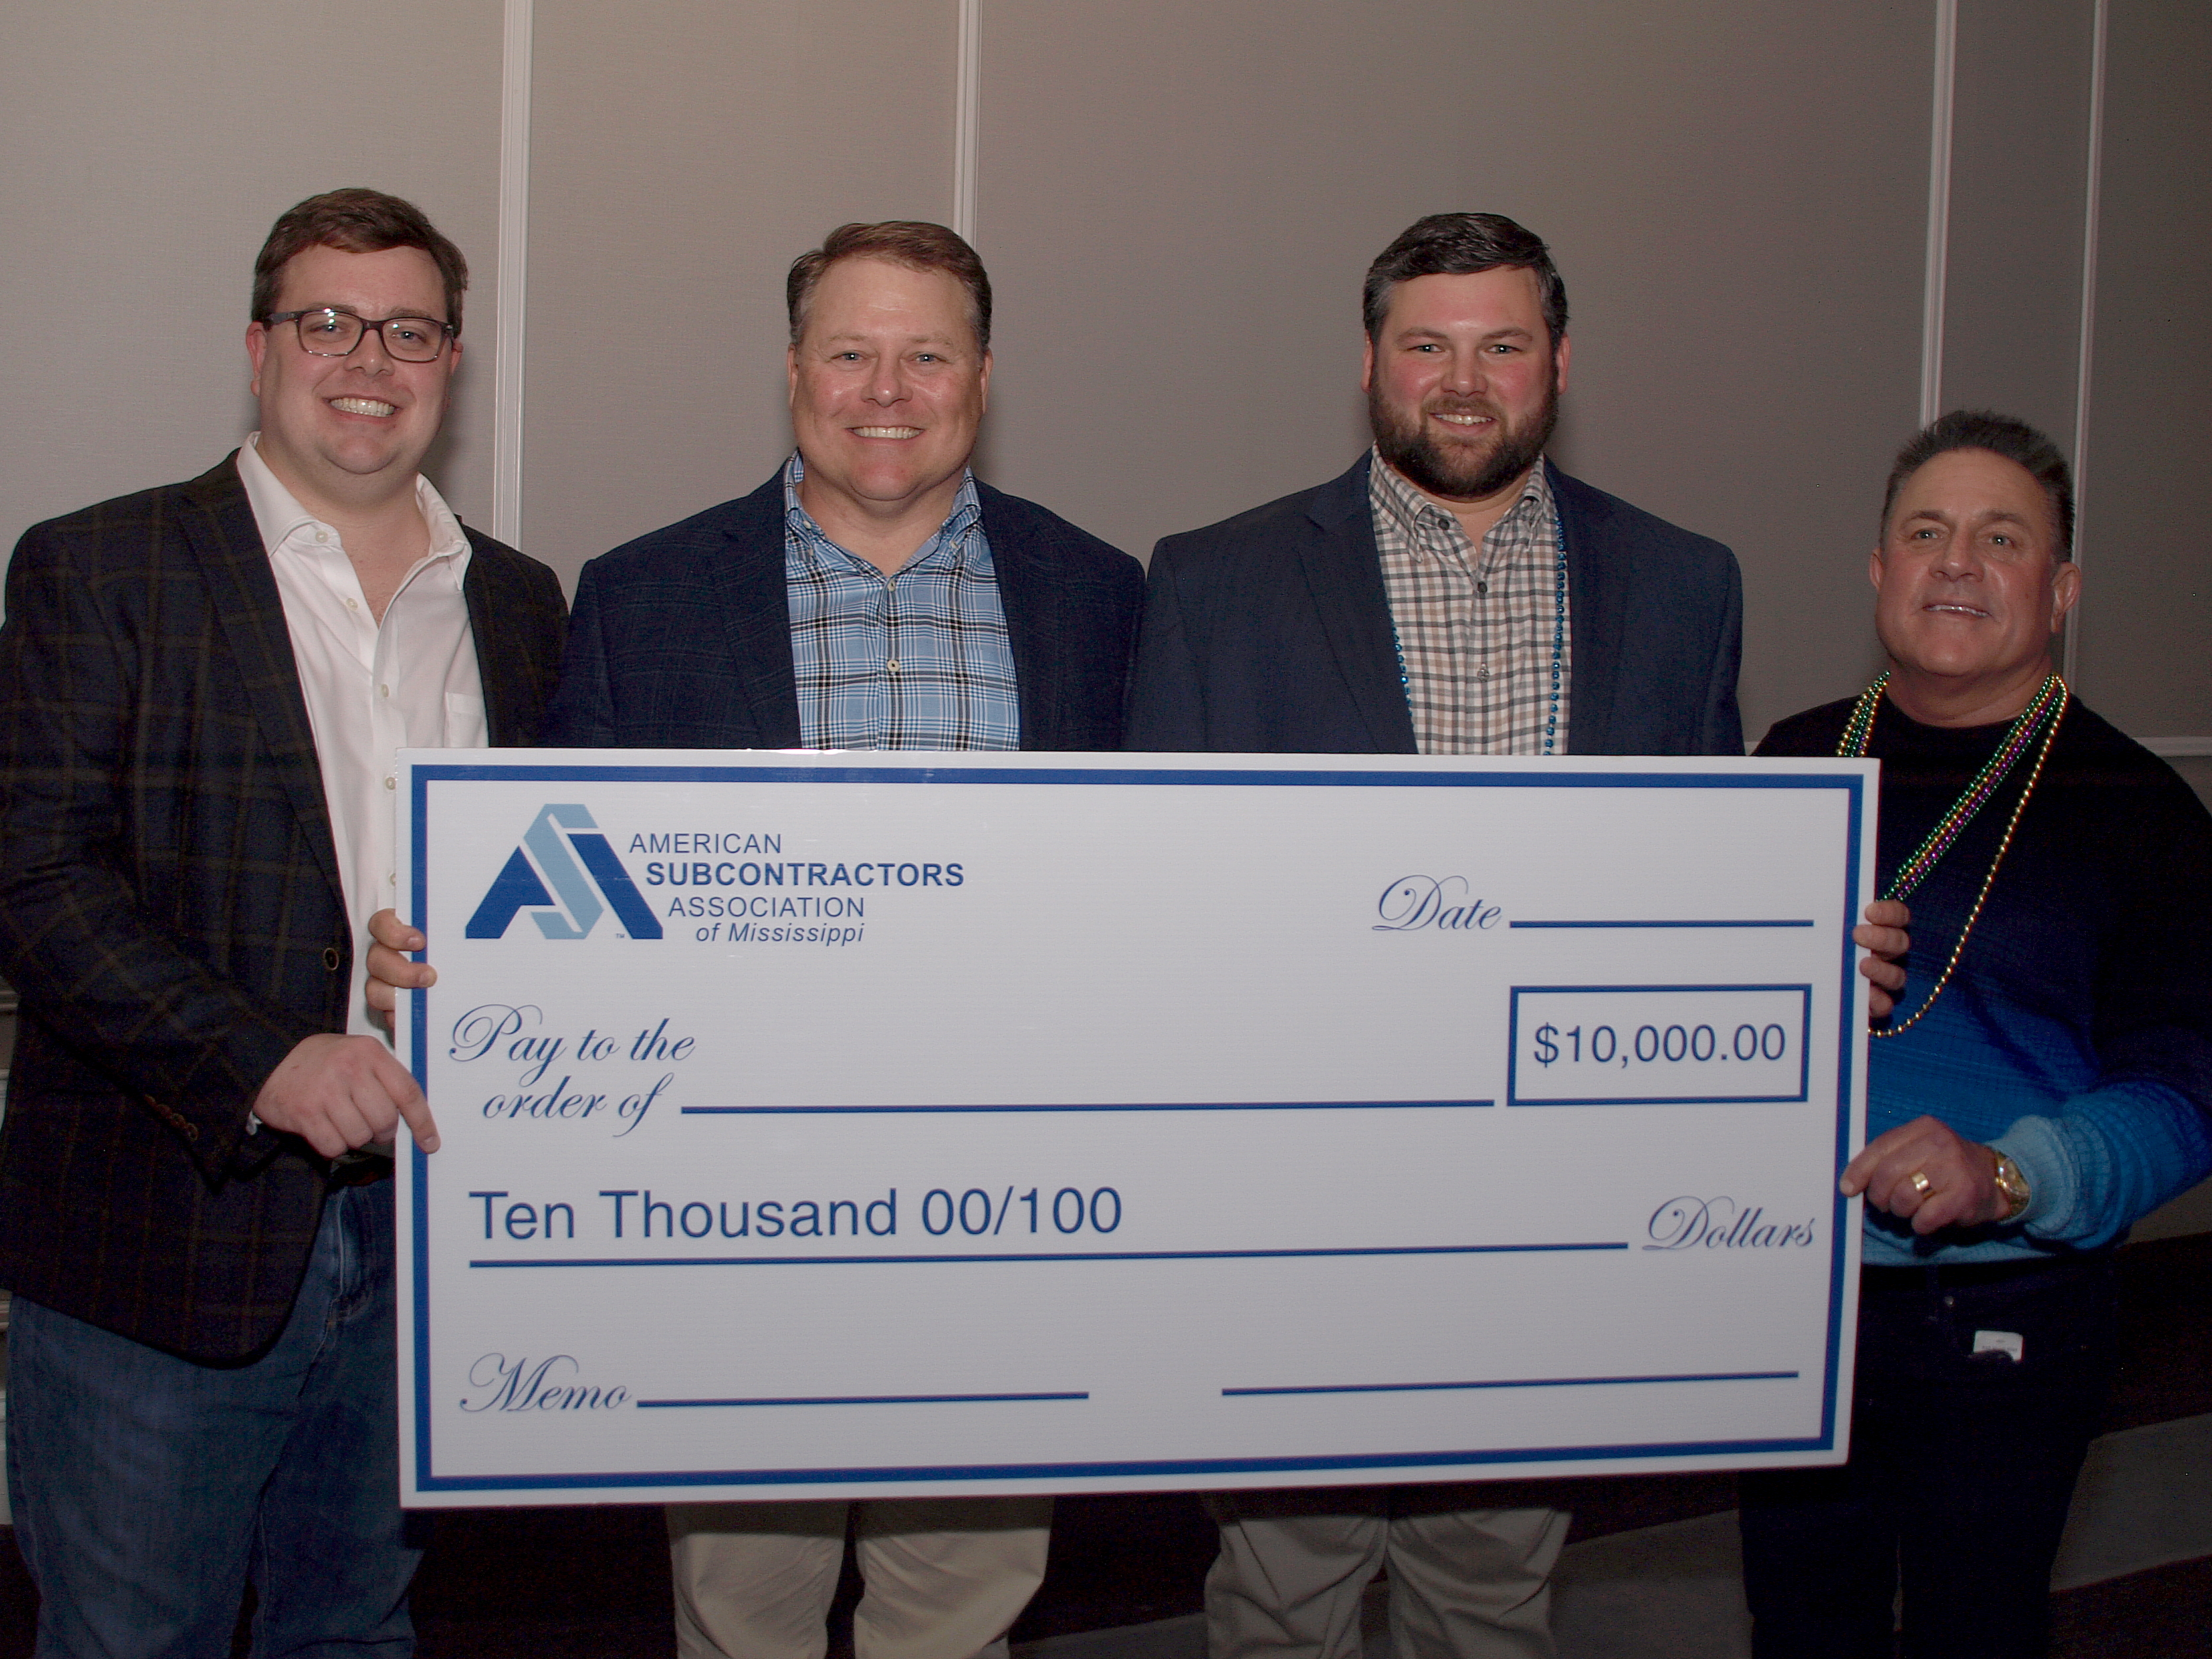 American Subcontractors Association of Mississippi  Image # 6